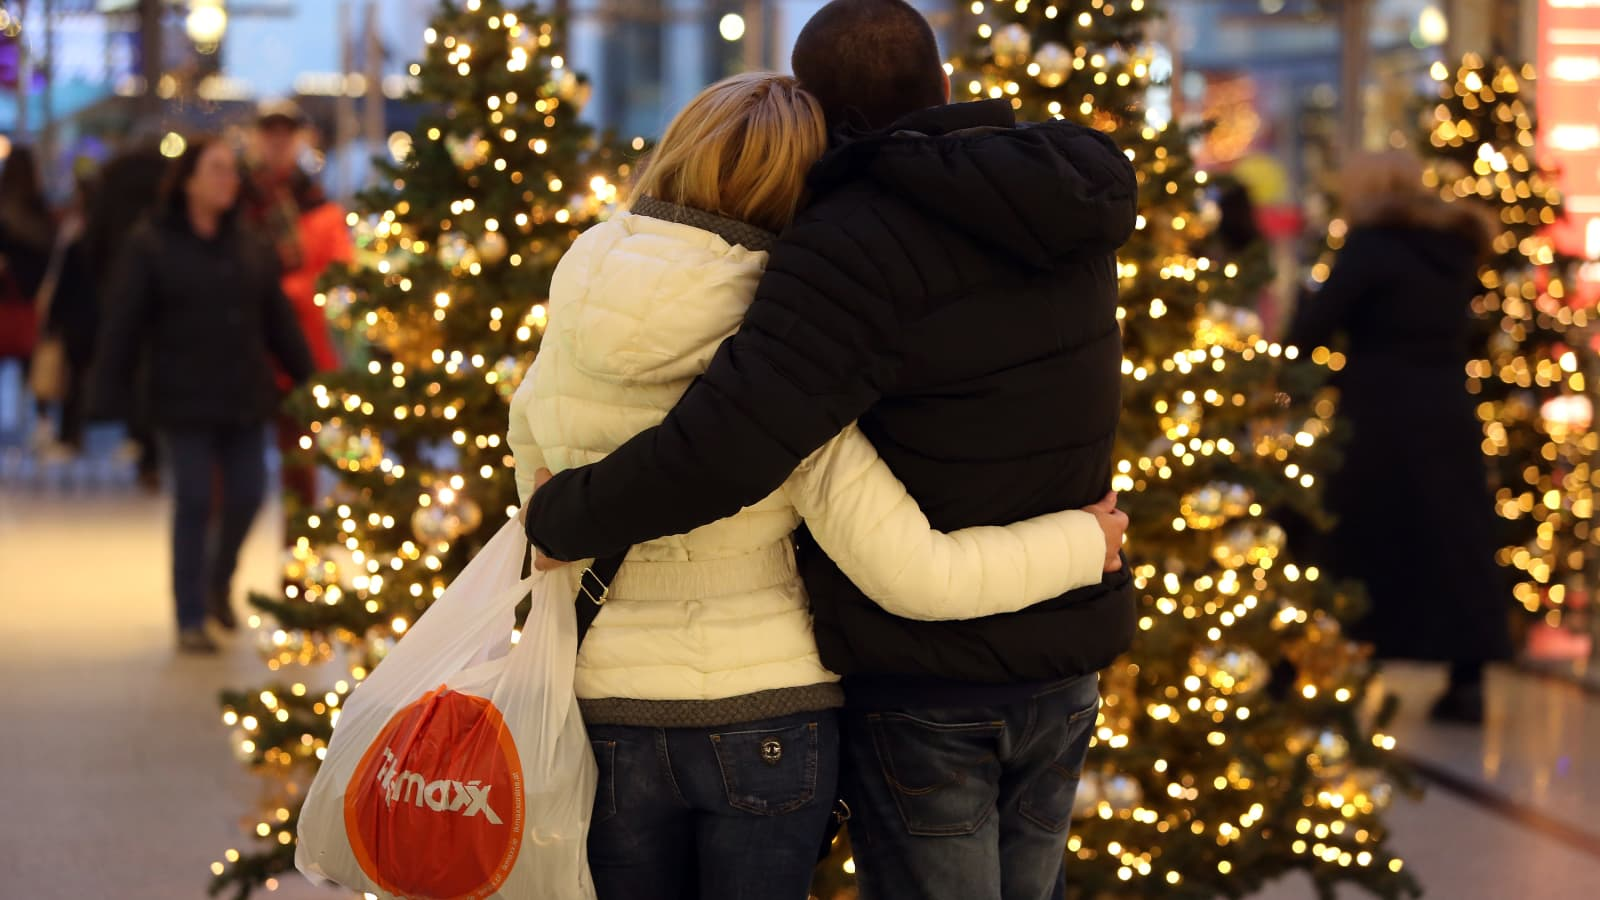 Pandemic Weary Shoppers Want A Meaningful Holiday Season